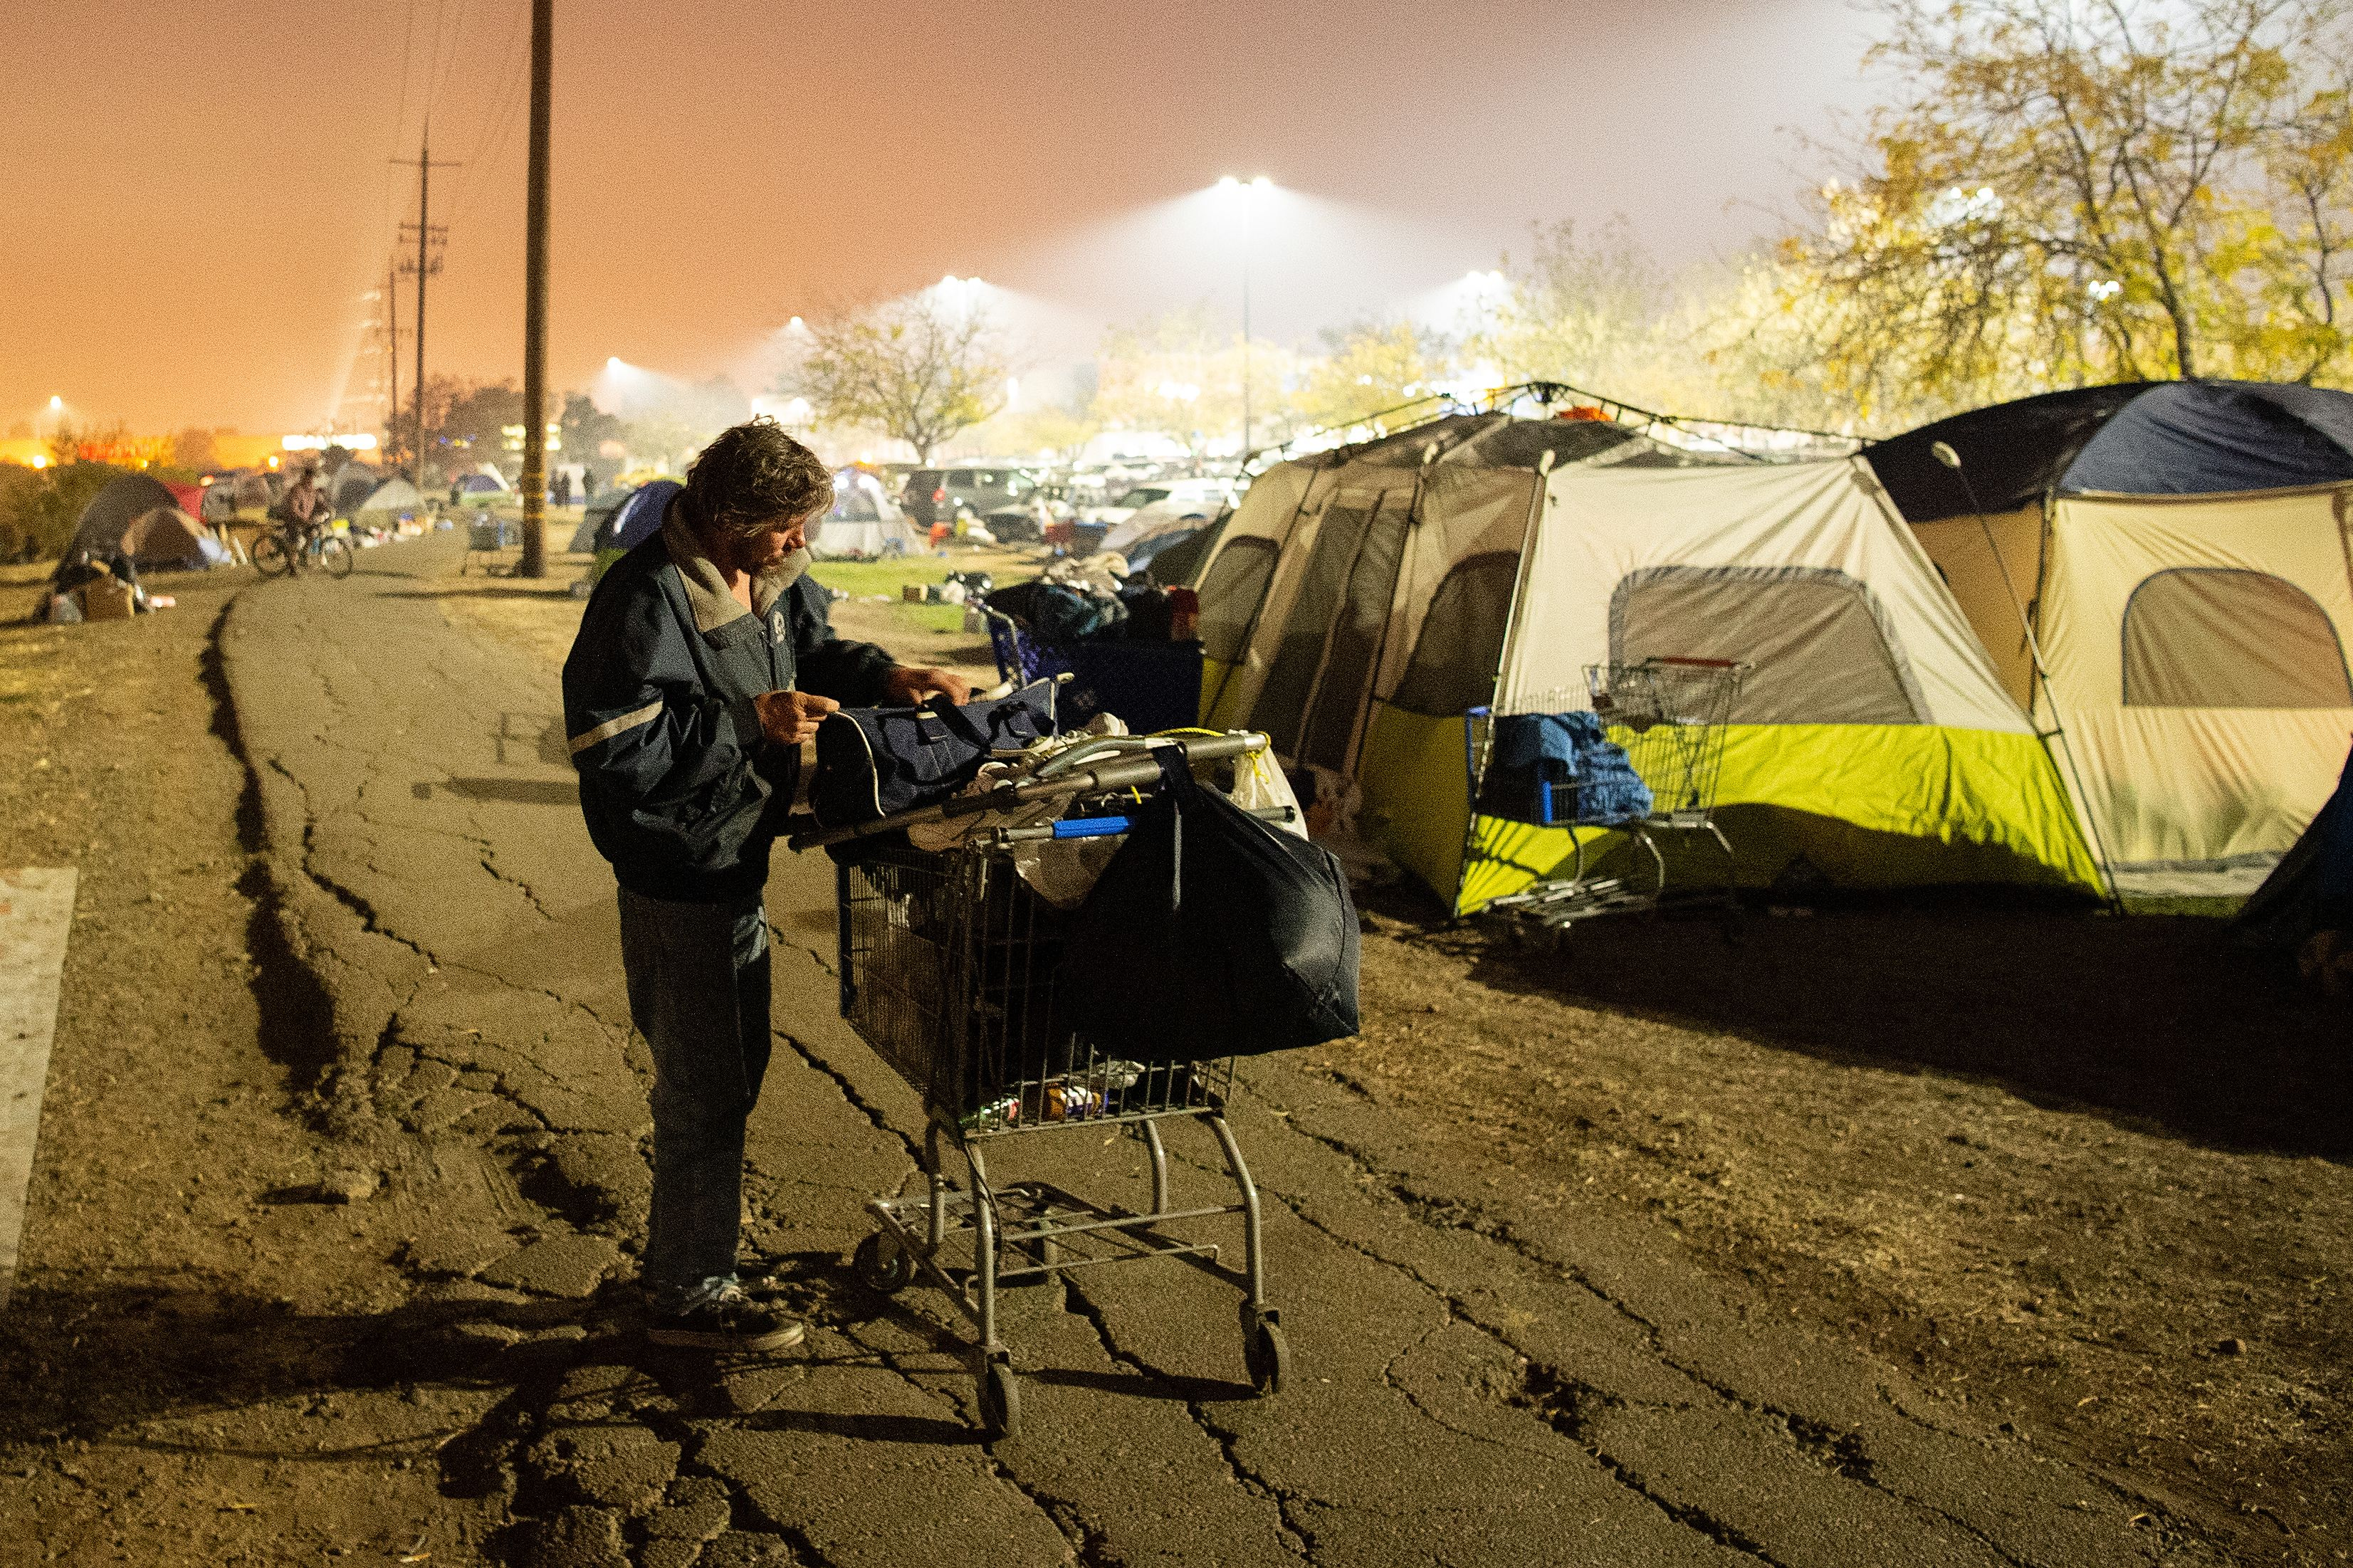 Six months after Camp Fire, survivors struggle to find temporary homes